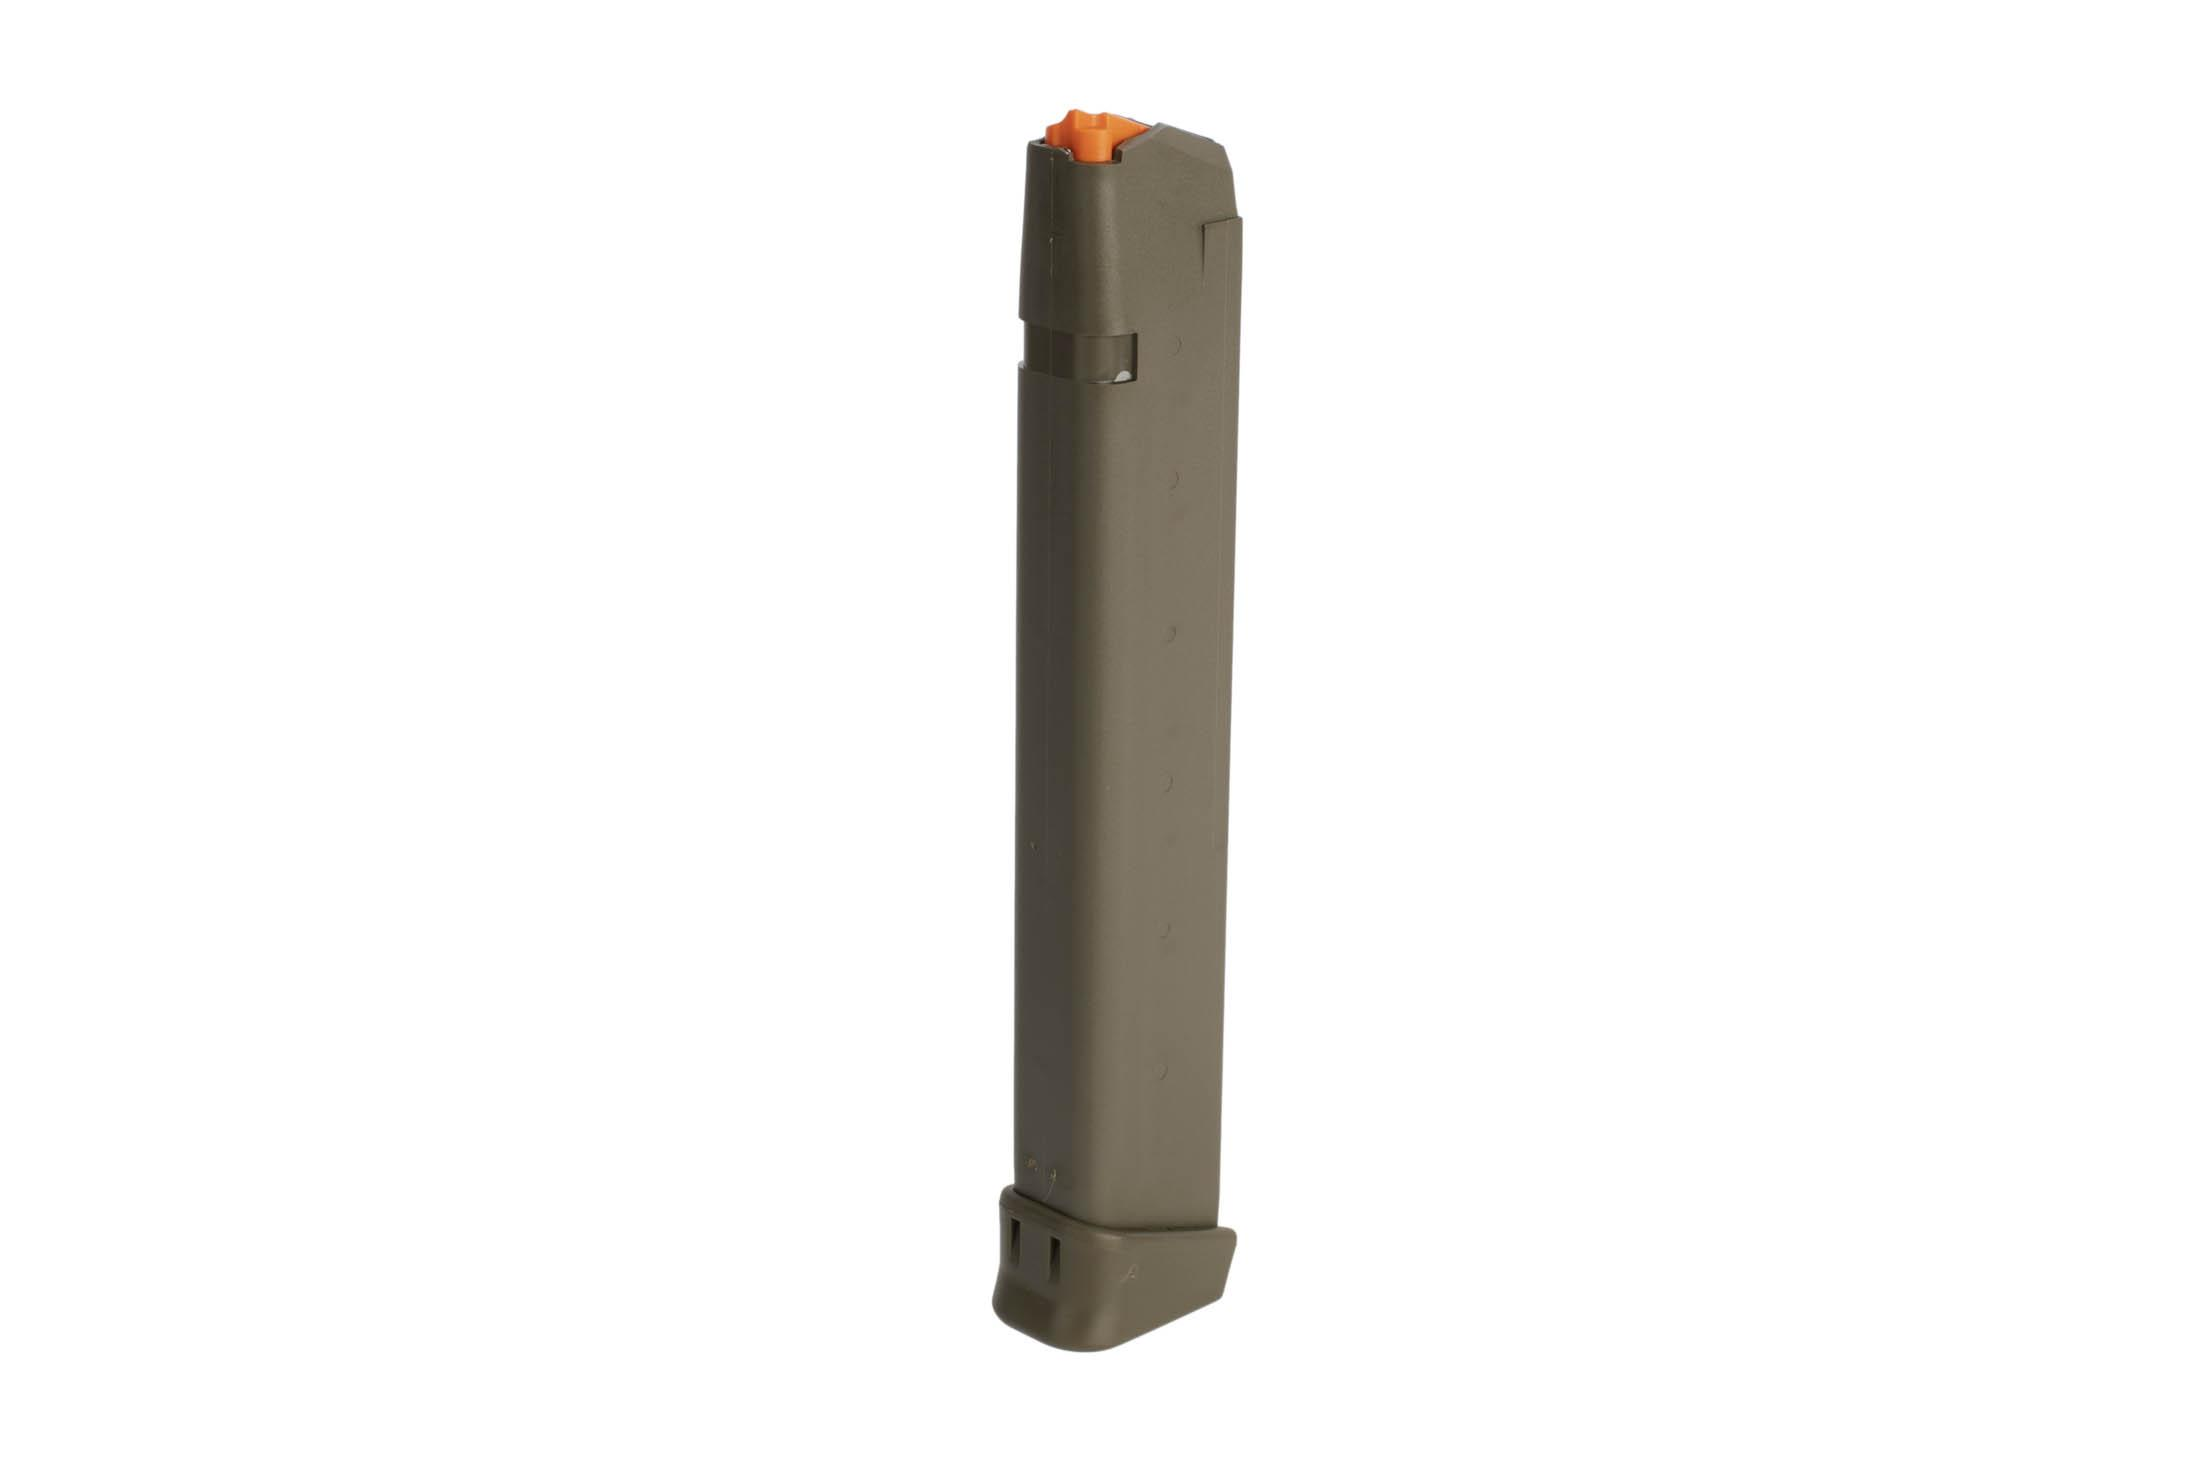 Glock G17 Gen 5 33-round 9mm ODG steel reinforced polymer magazine with high visibility follower and ambi mag catch cuts